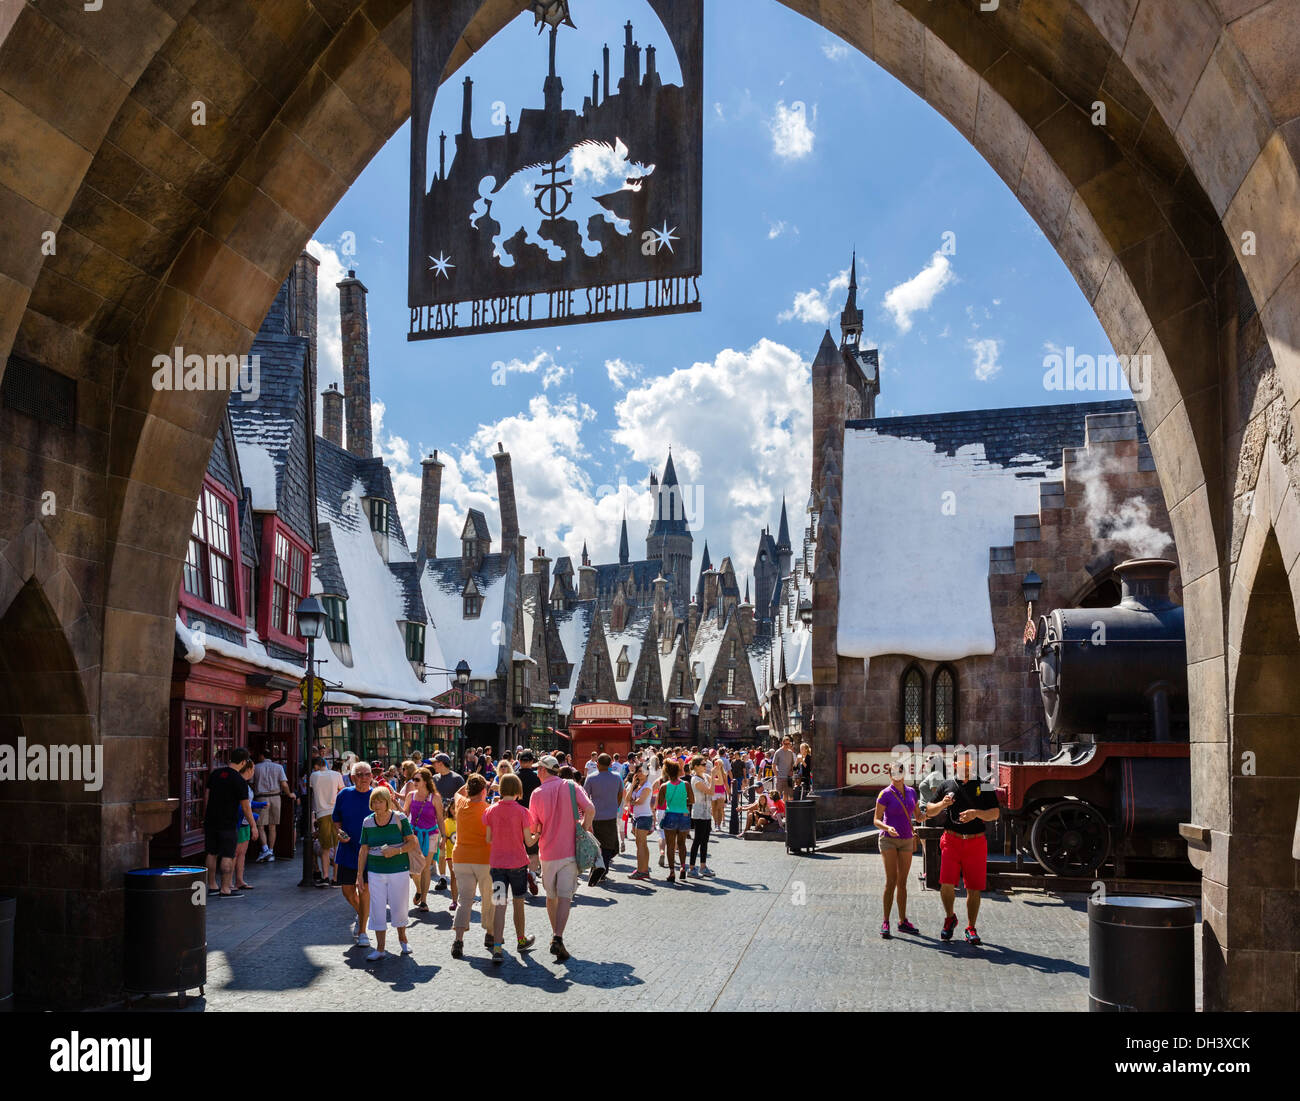 Entrance to the Wizarding World of Harry Potter, Islands of Adventure, Universal Orlando Resort, Orlando, Central - Stock Image